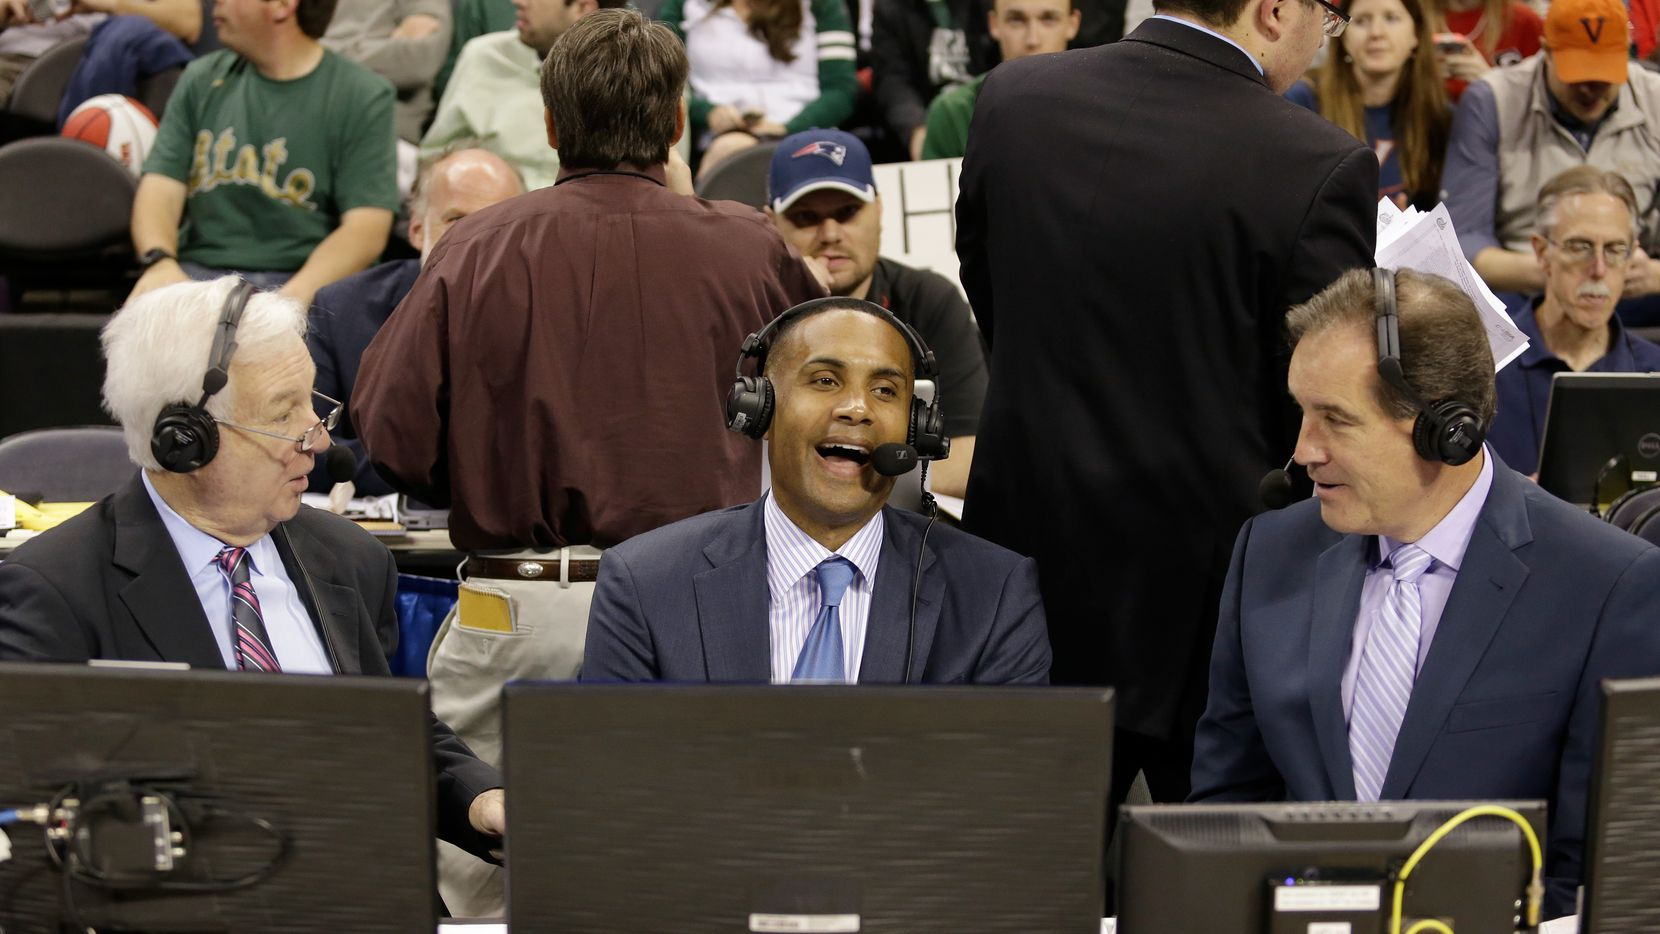 CHARLOTTE, NC - MARCH 20:  (L-R) College basketball analysts, Bill Raftery, Grant Hill, and Jim Nance watch on during the game between the Georgia Bulldogs and Michigan State Spartans during the second round of the 2015 NCAA Men's Basketball Tournament at Time Warner Cable Arena on March 20, 2015 in Charlotte, North Carolina.  (Photo by Bob Leverone/Getty Images)